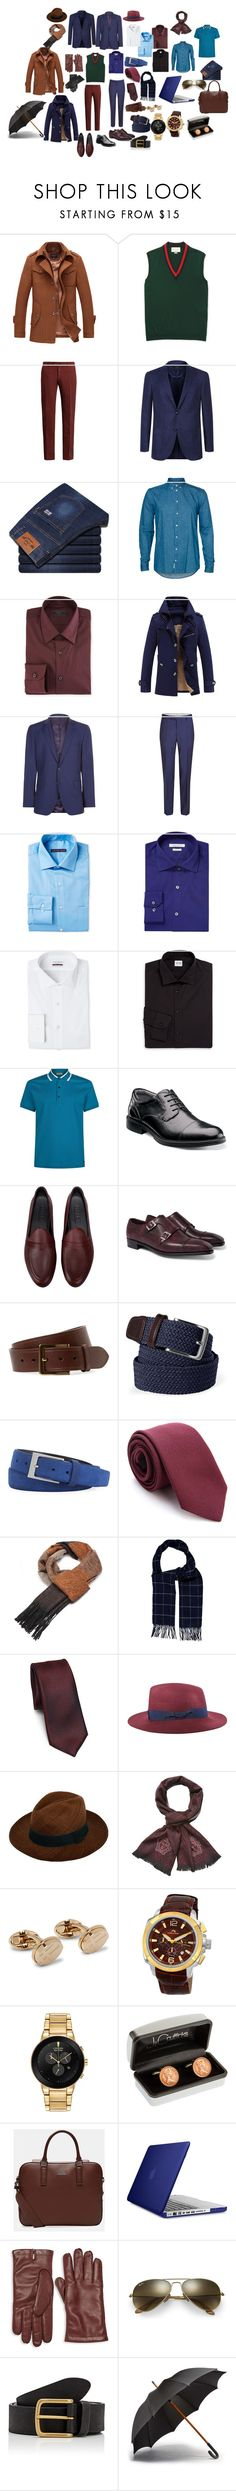 """Базовый гардероб"" by tsjk on Polyvore featuring Gucci, Incotex, Corneliani, Minimum, Prada, Jaeger, Baldessarini, Geoffrey Beene, Perry Ellis и Van Heusen"